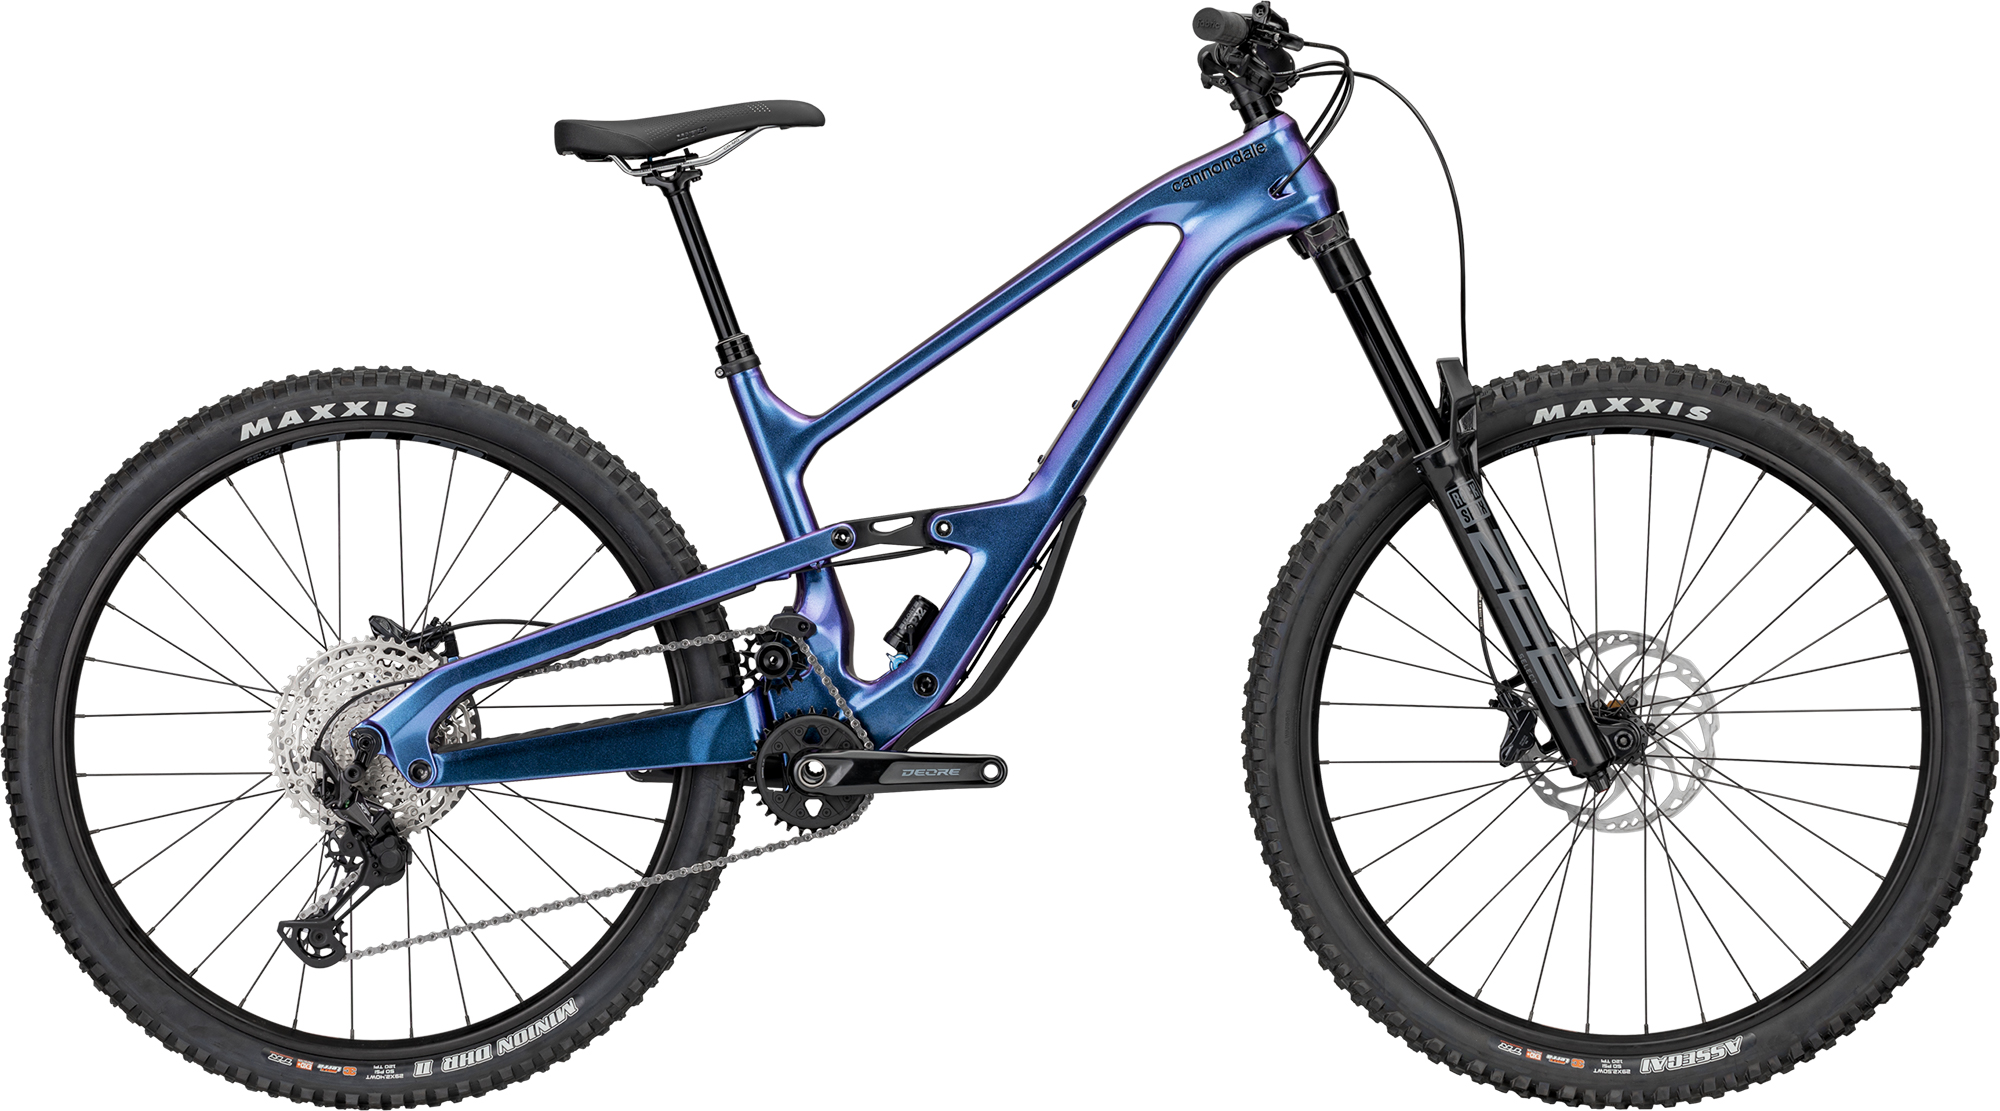 CANNONDALE JEKYLL 2022